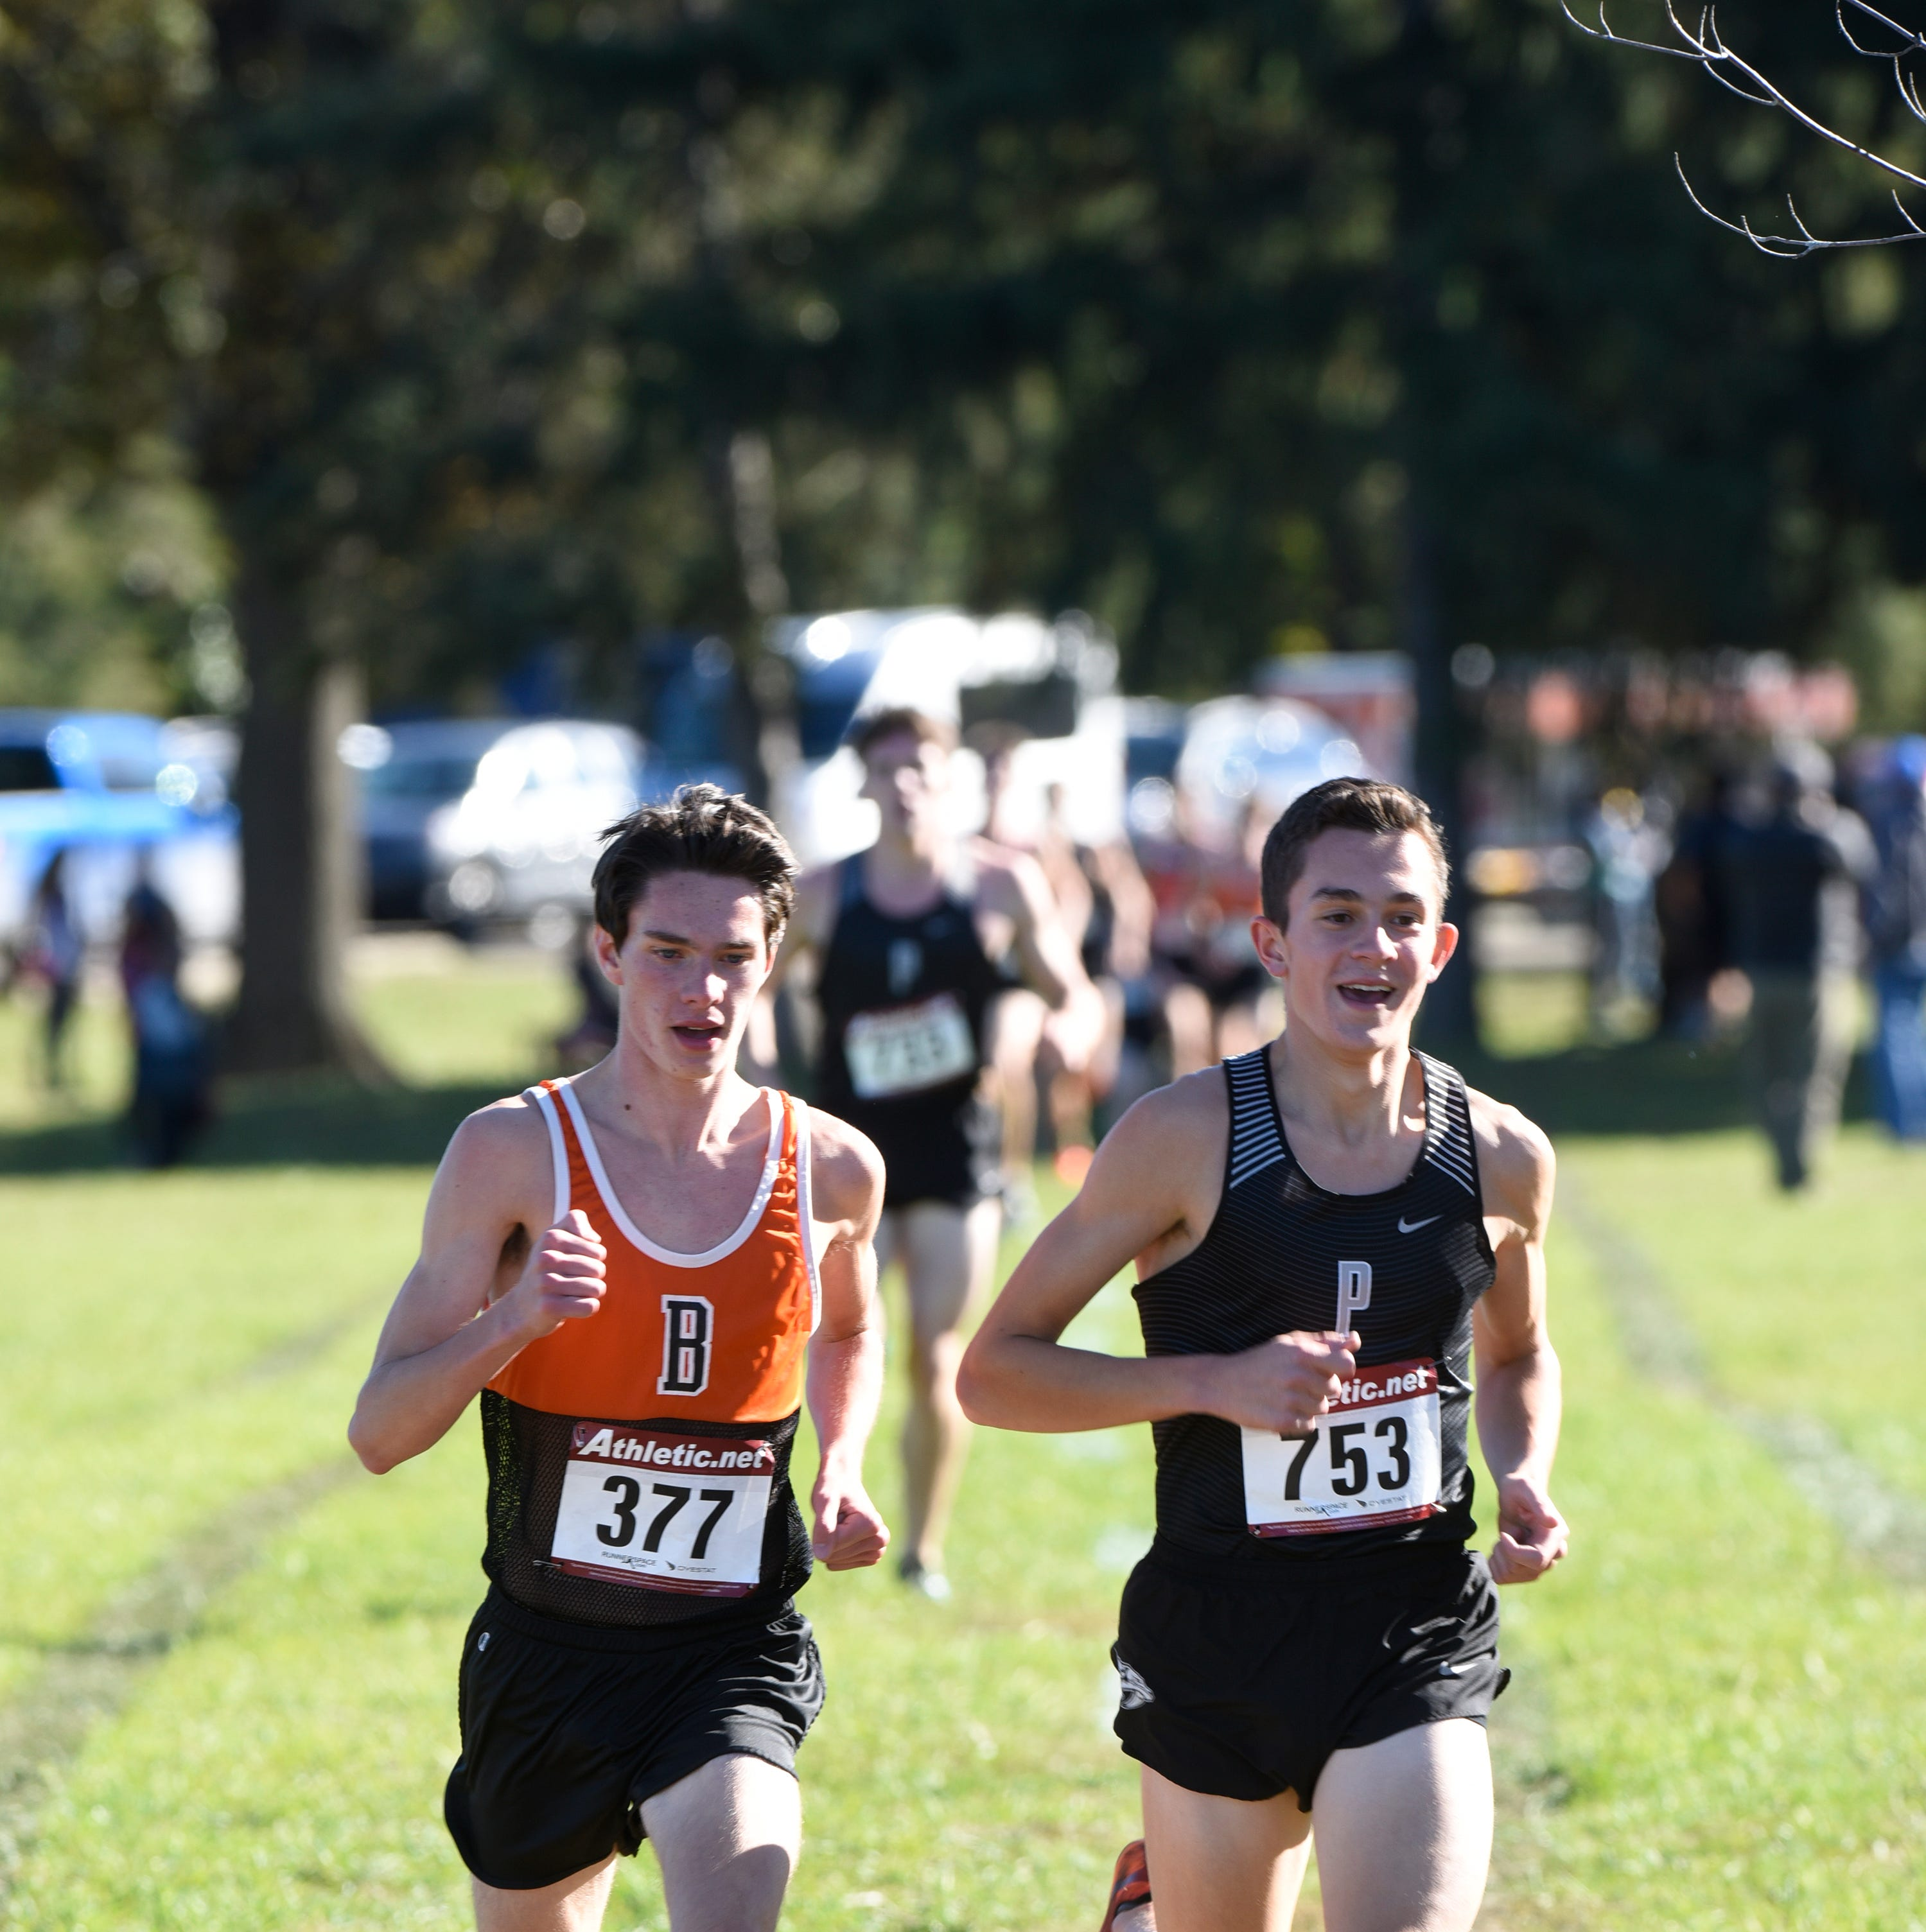 Boys and girls 2018 KLAA Conference Cross Country meet